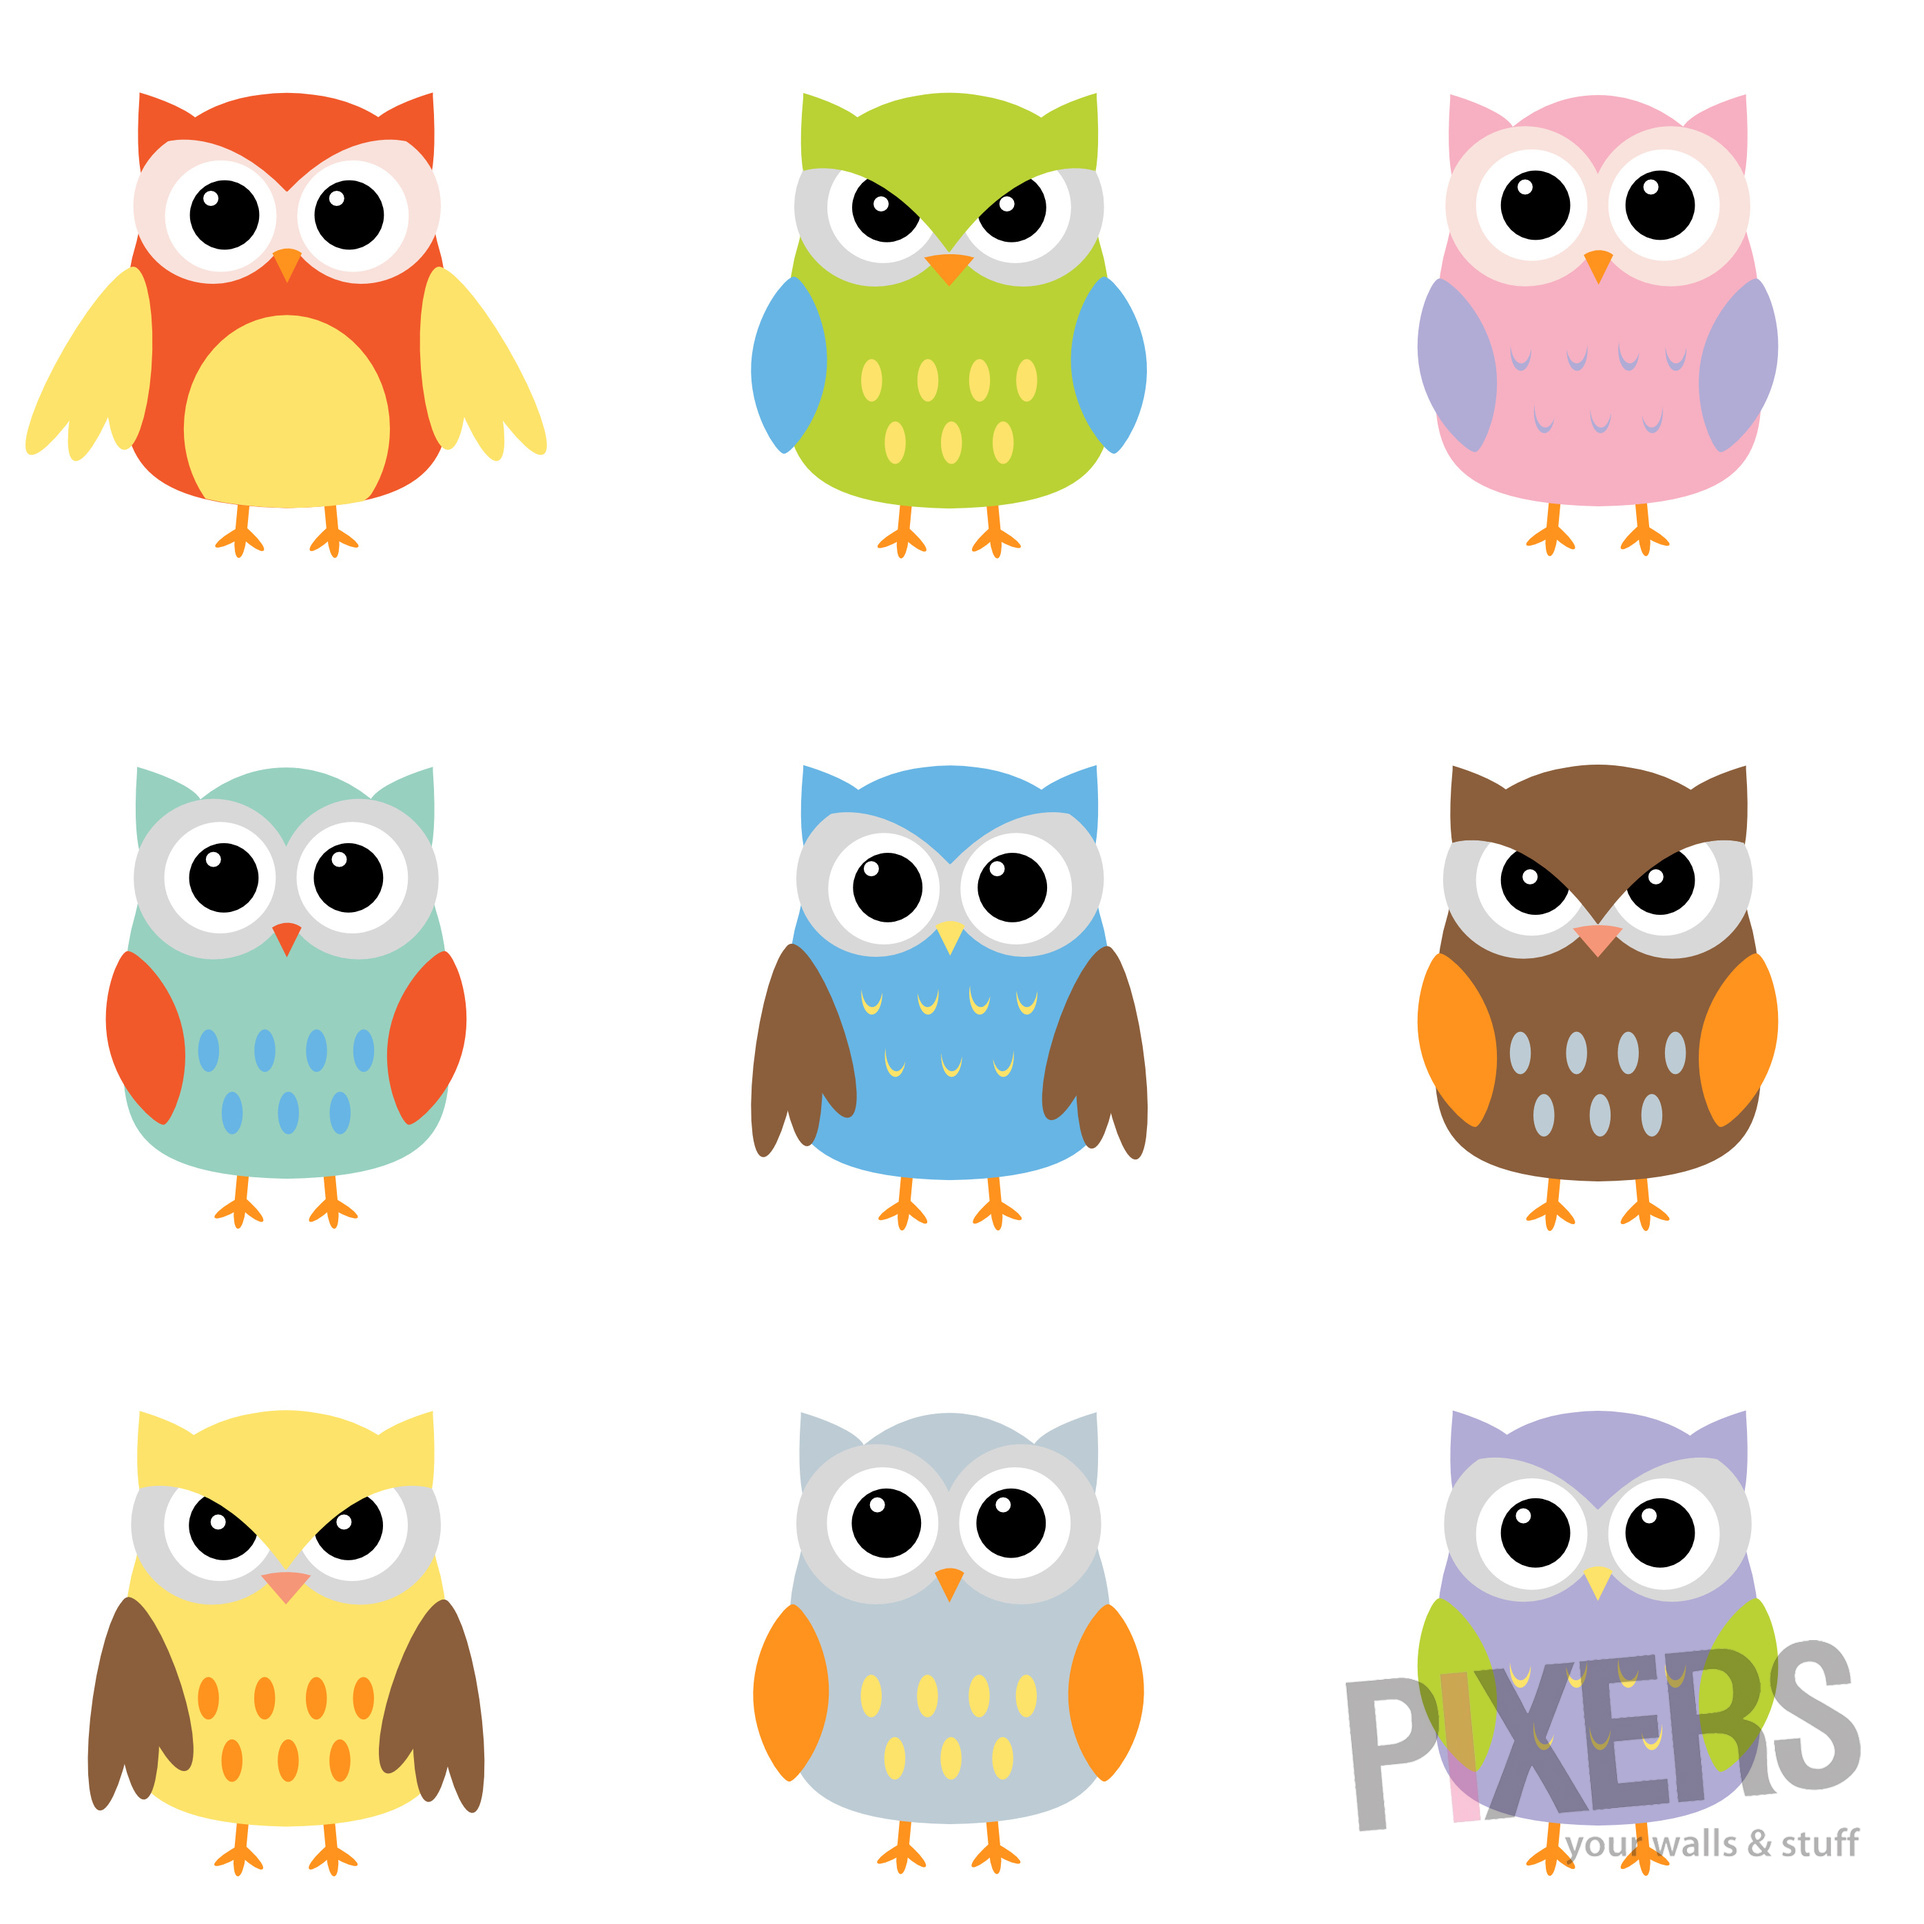 Awesome Owl Decorations For Your Home - pixersize.com